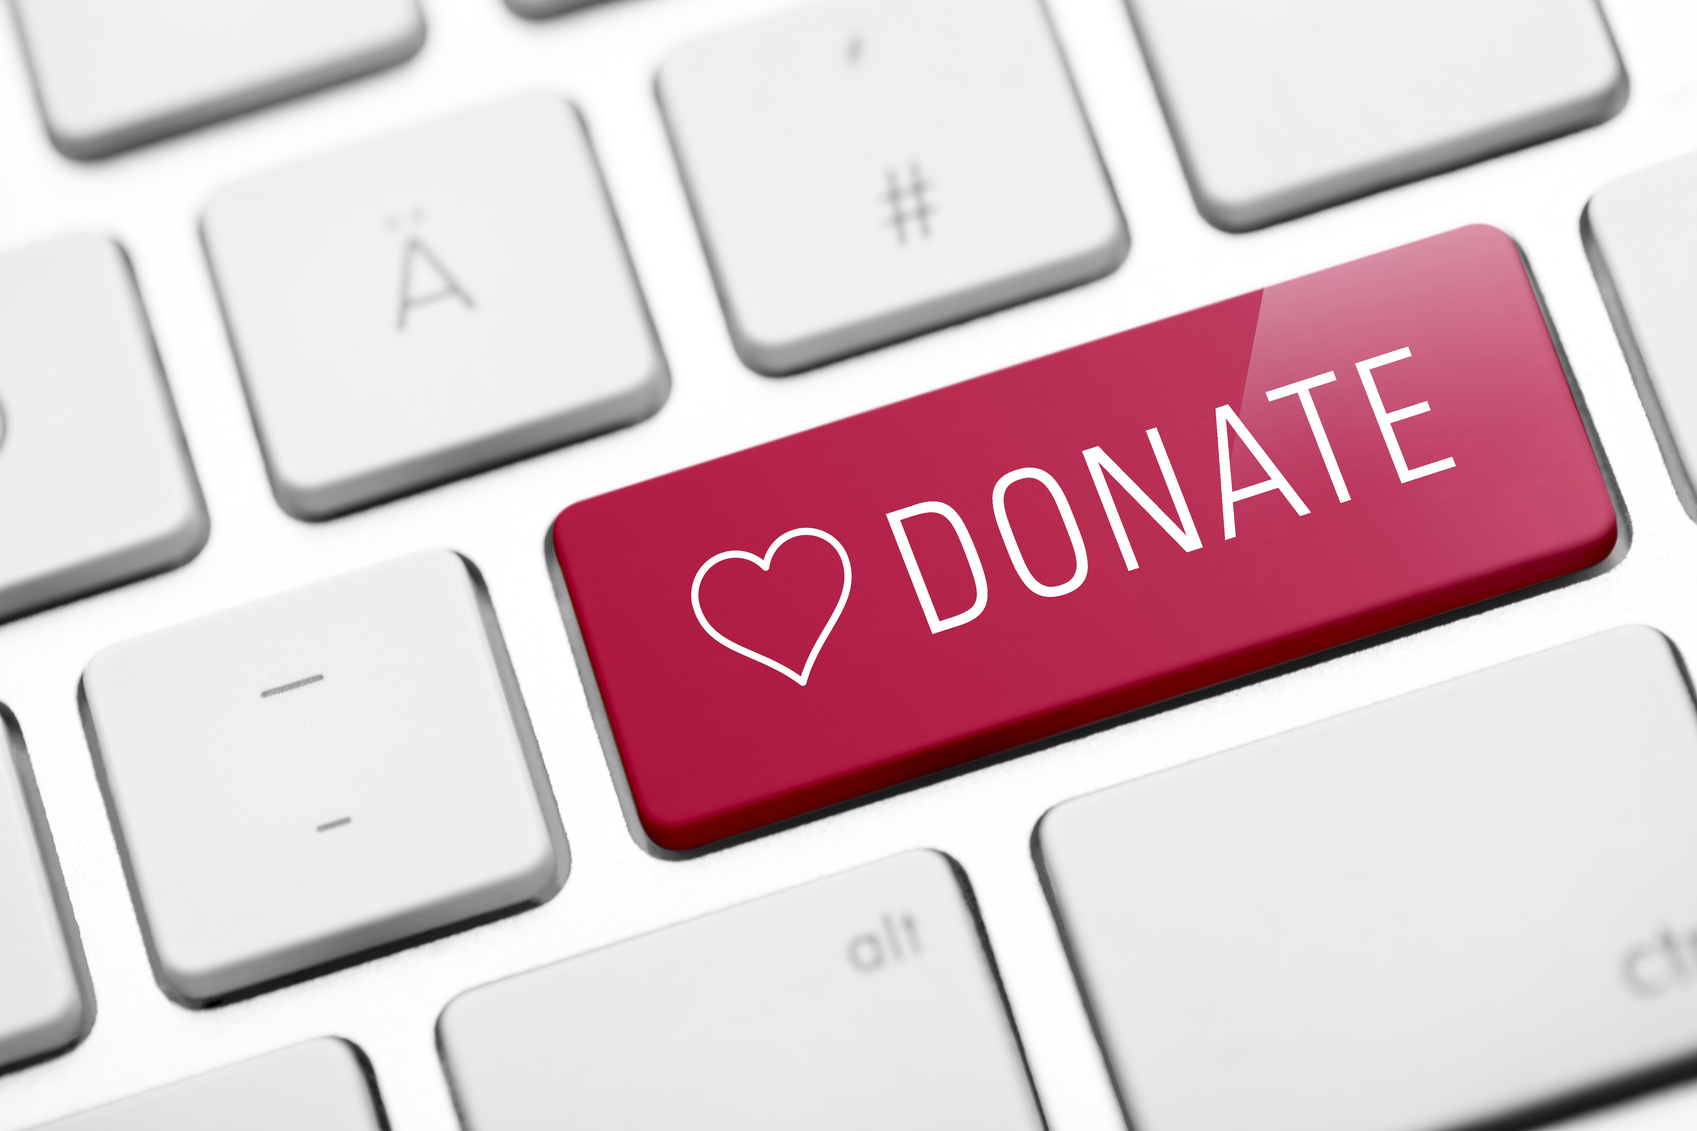 Using Technology to Increase Charitable Giving